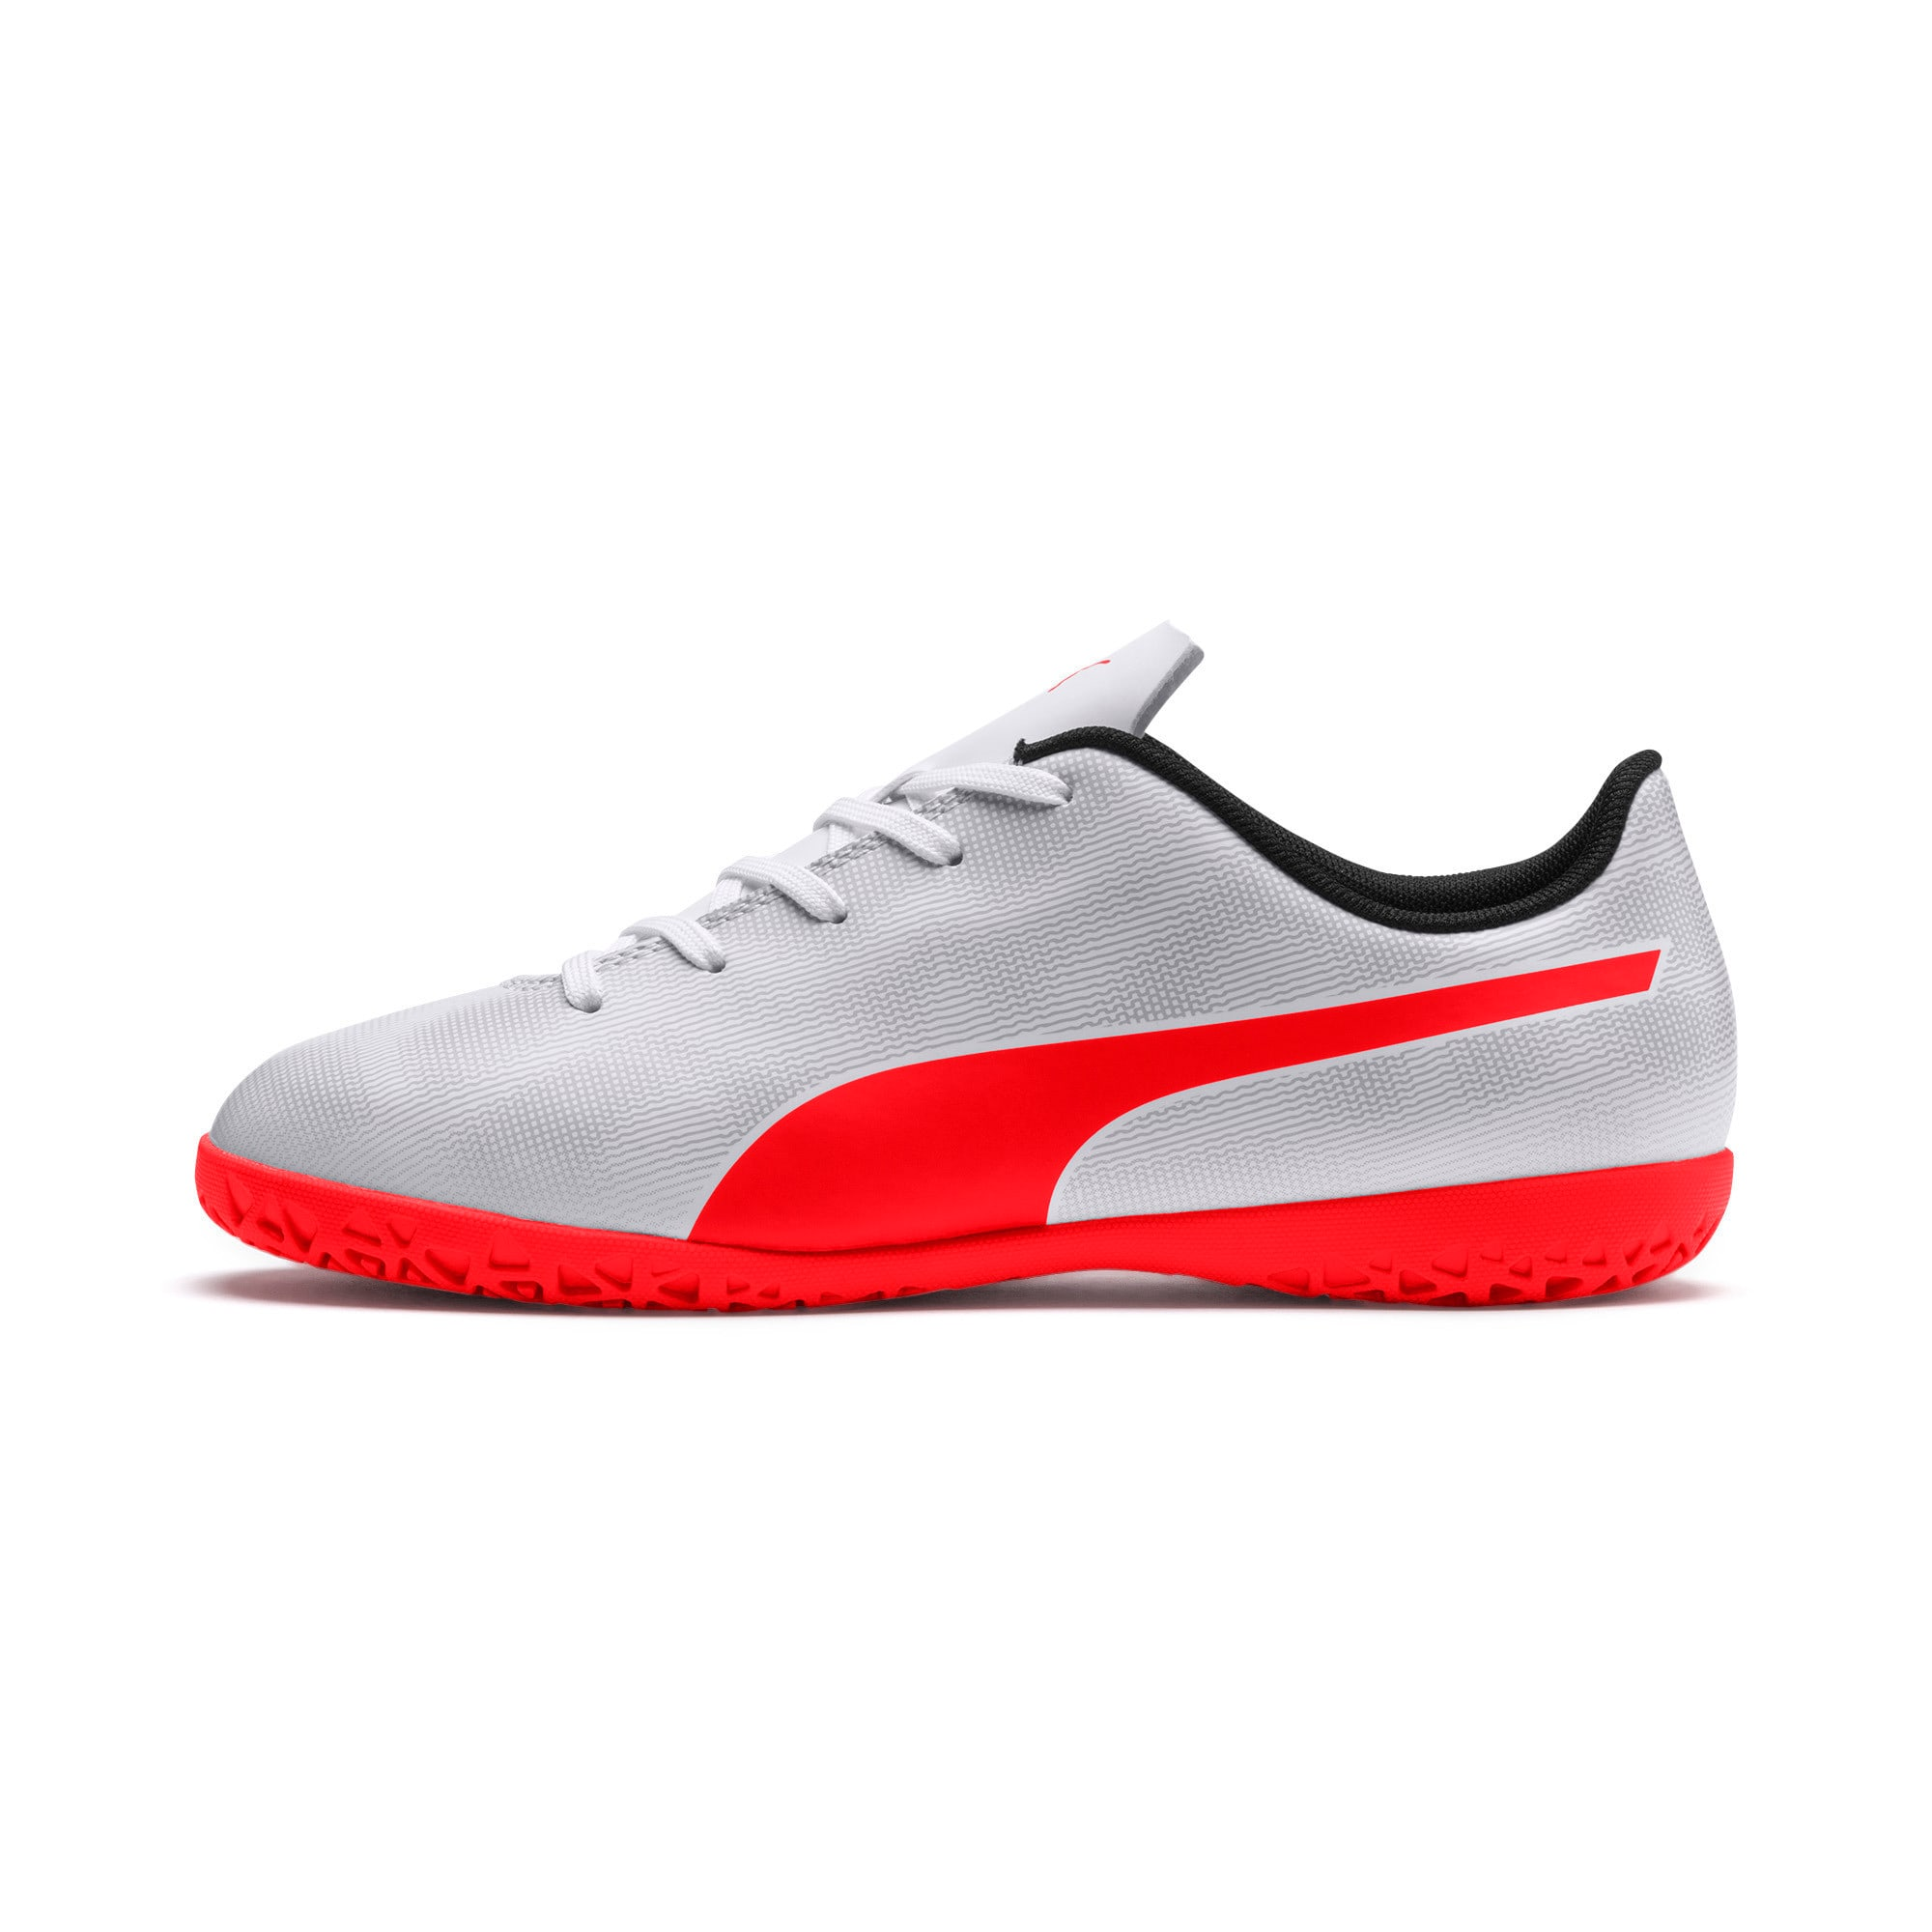 Thumbnail 1 of Rapido IT Youth Football Boots, White-Gray-Black-Red Blast, medium-IND